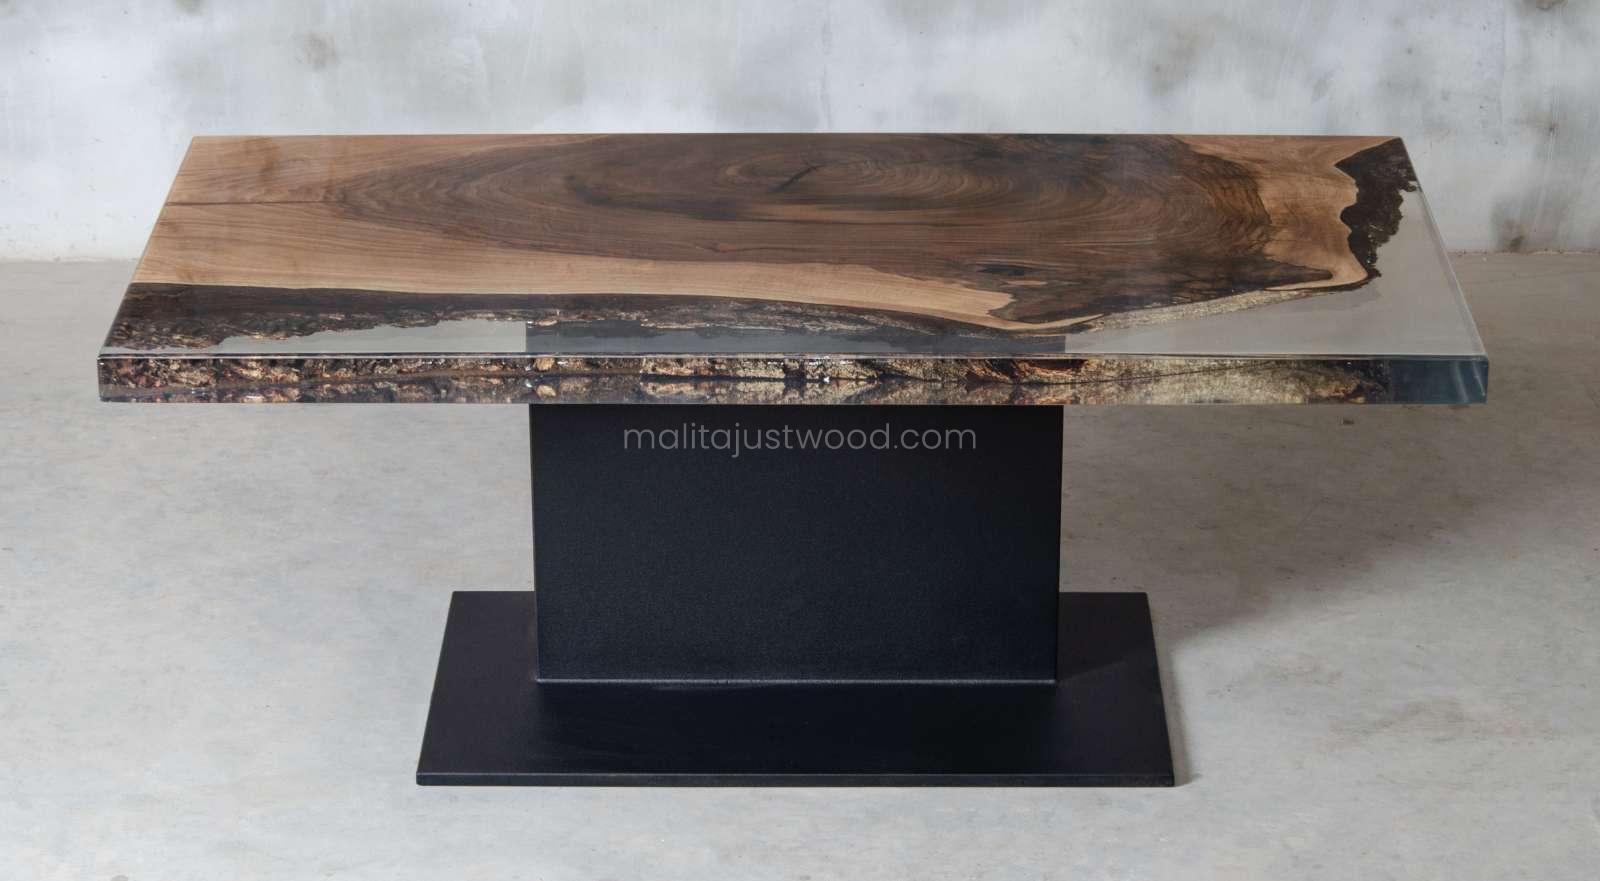 Sublimis resin table of walnut wood and black steel